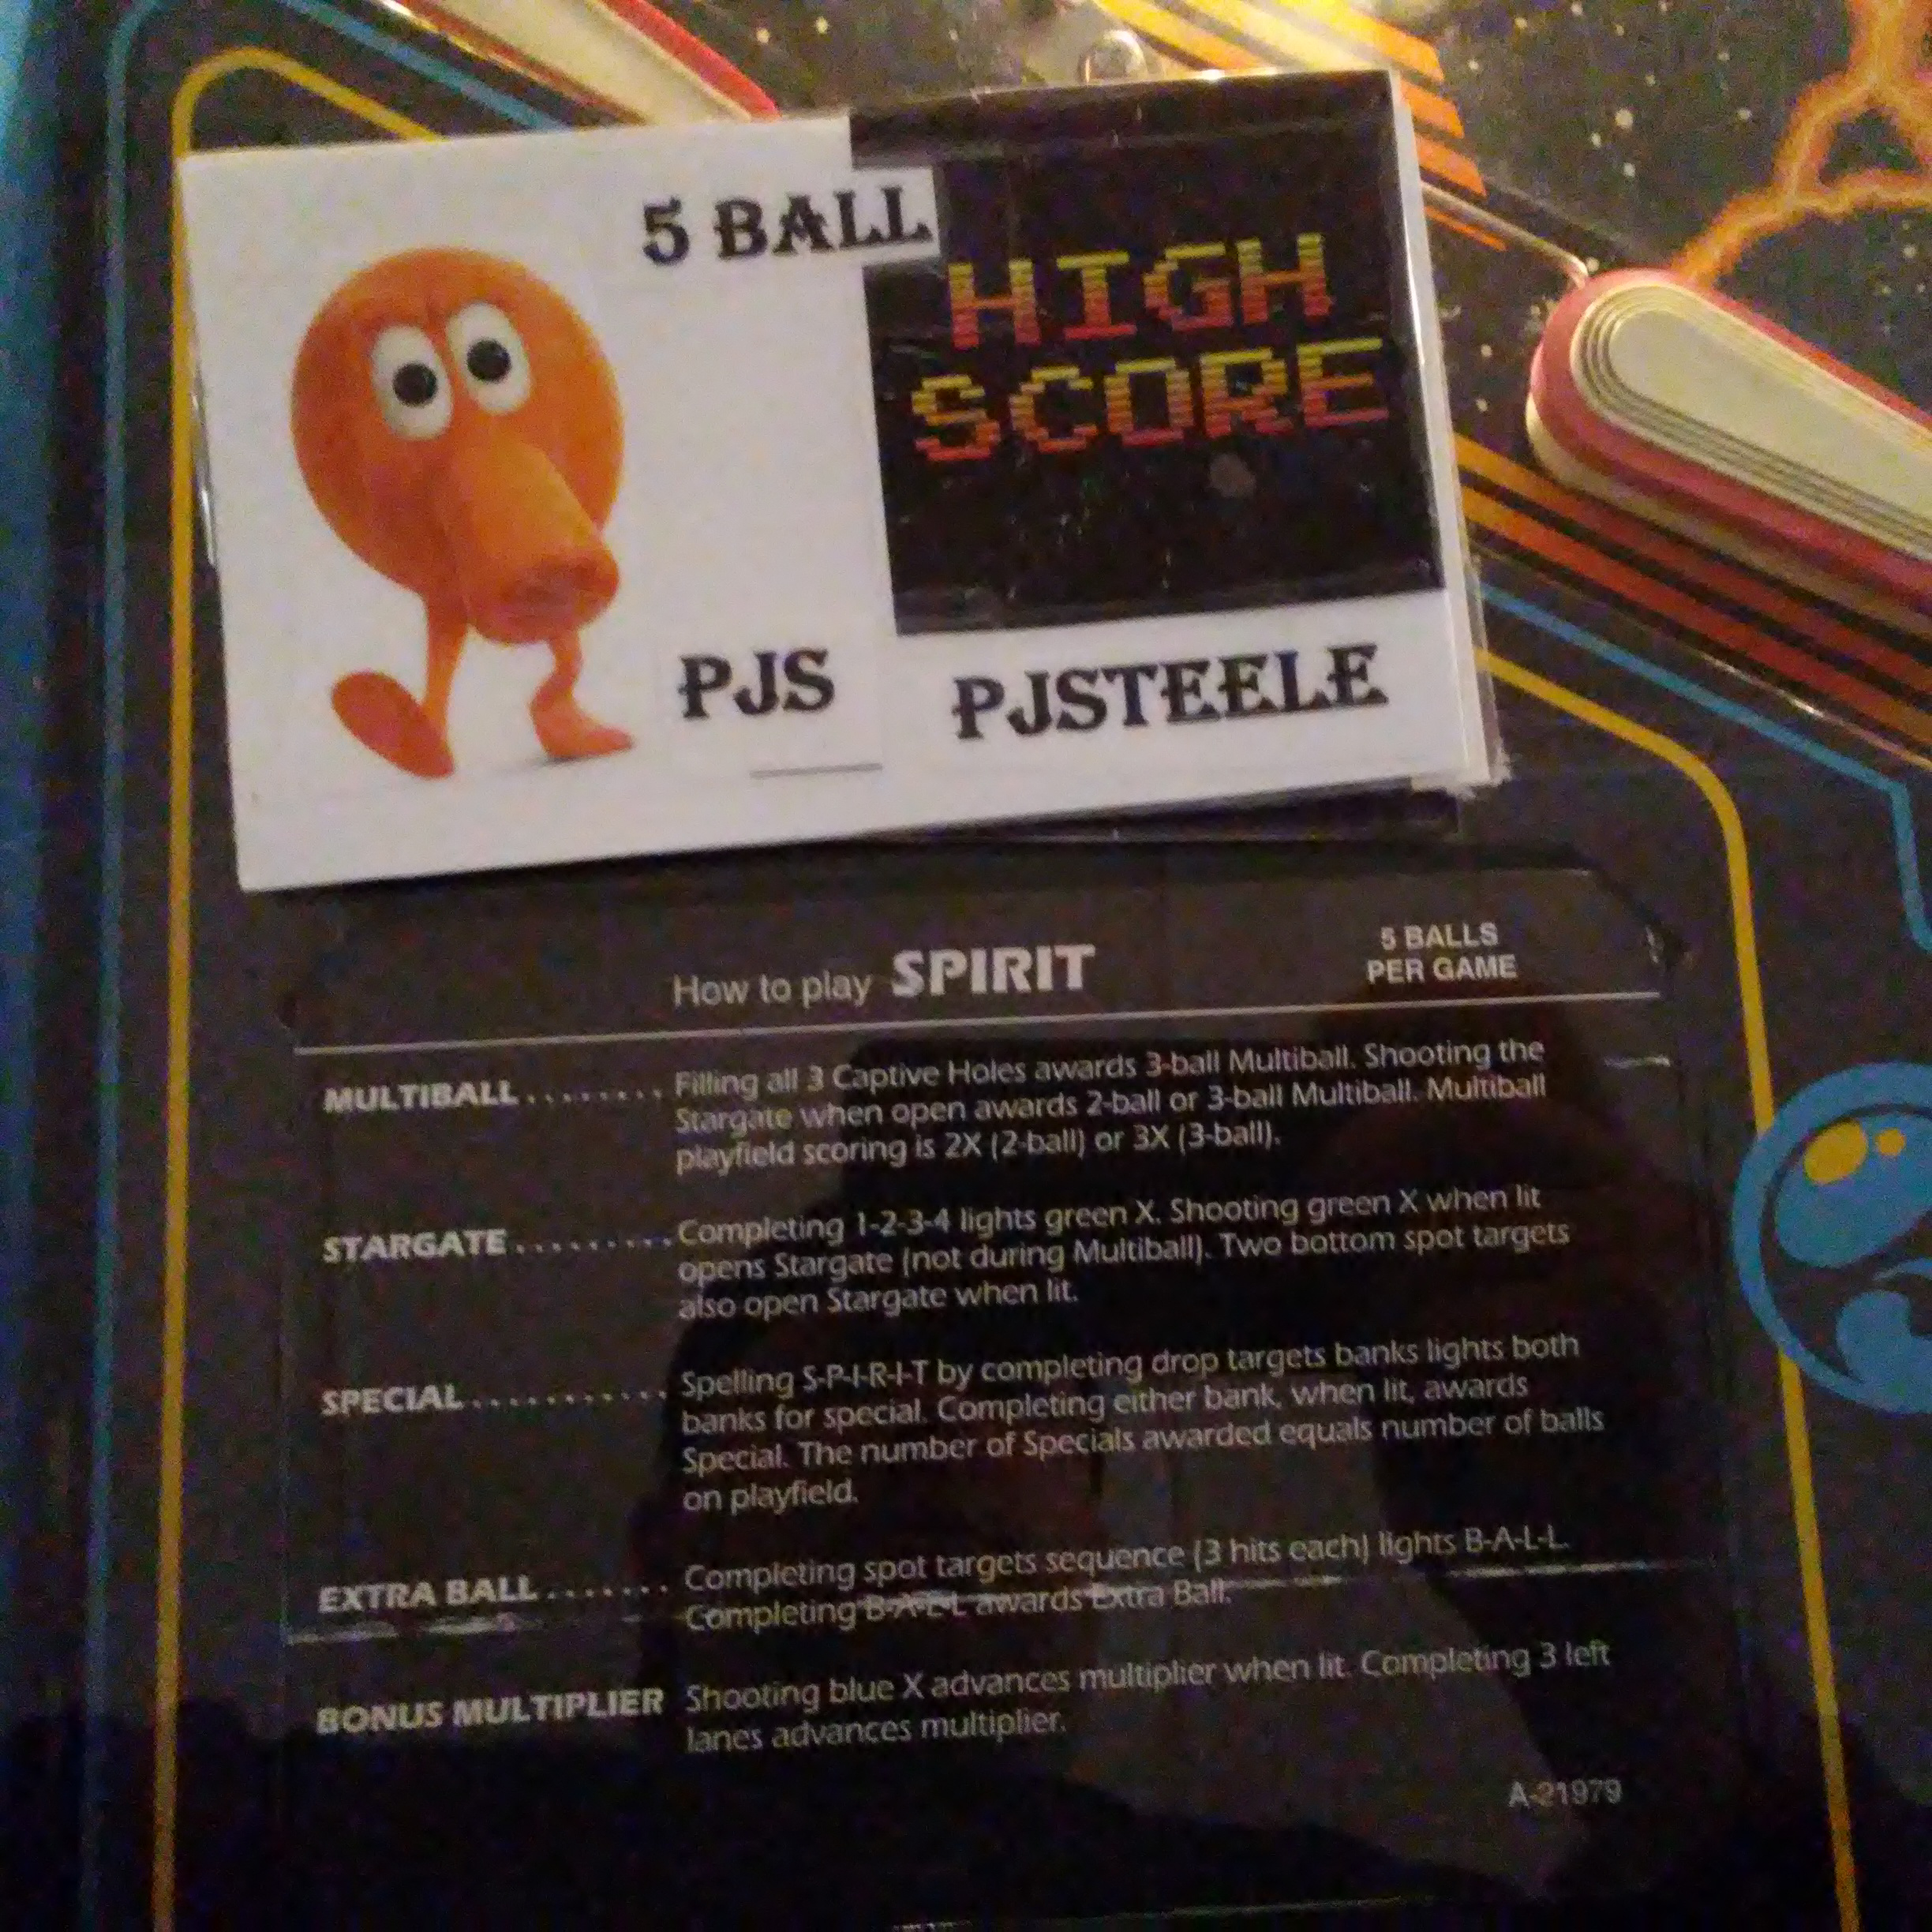 Pjsteele: Spirit (Pinball: 5 Balls) 396,070 points on 2018-03-04 08:05:04